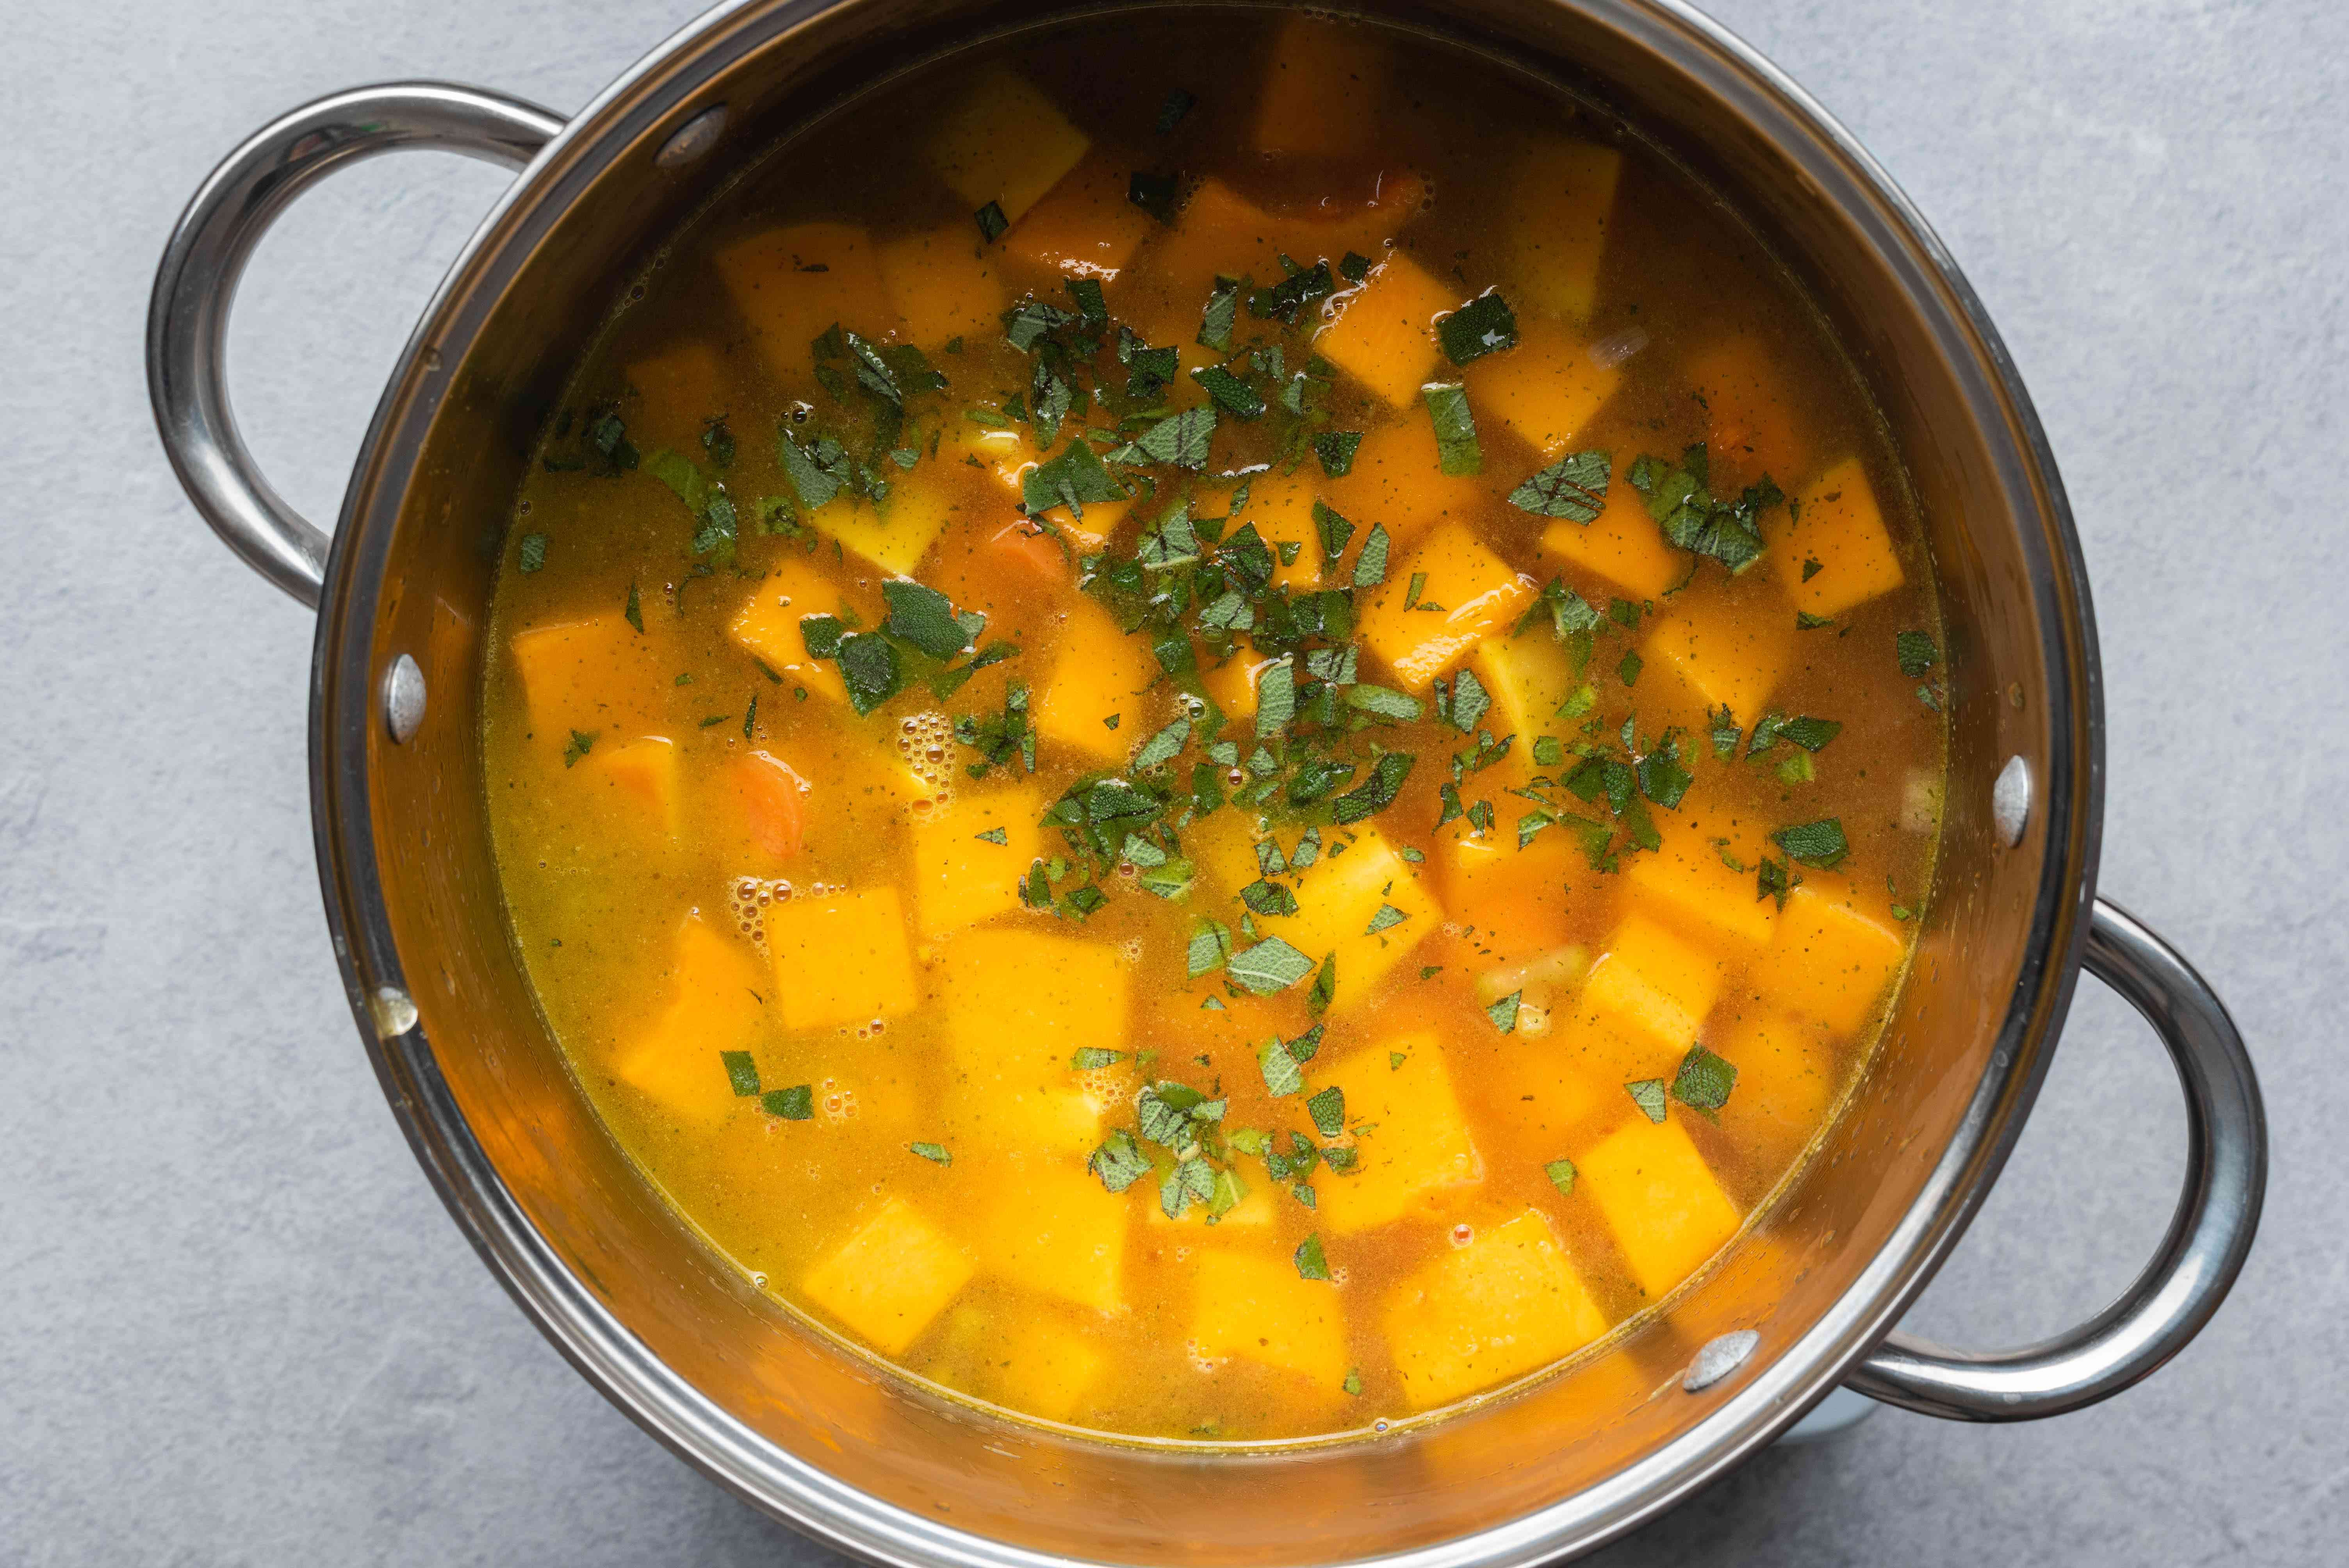 Add the chopped butternut squash and vegetable broth to the vegetable mixture in the pot